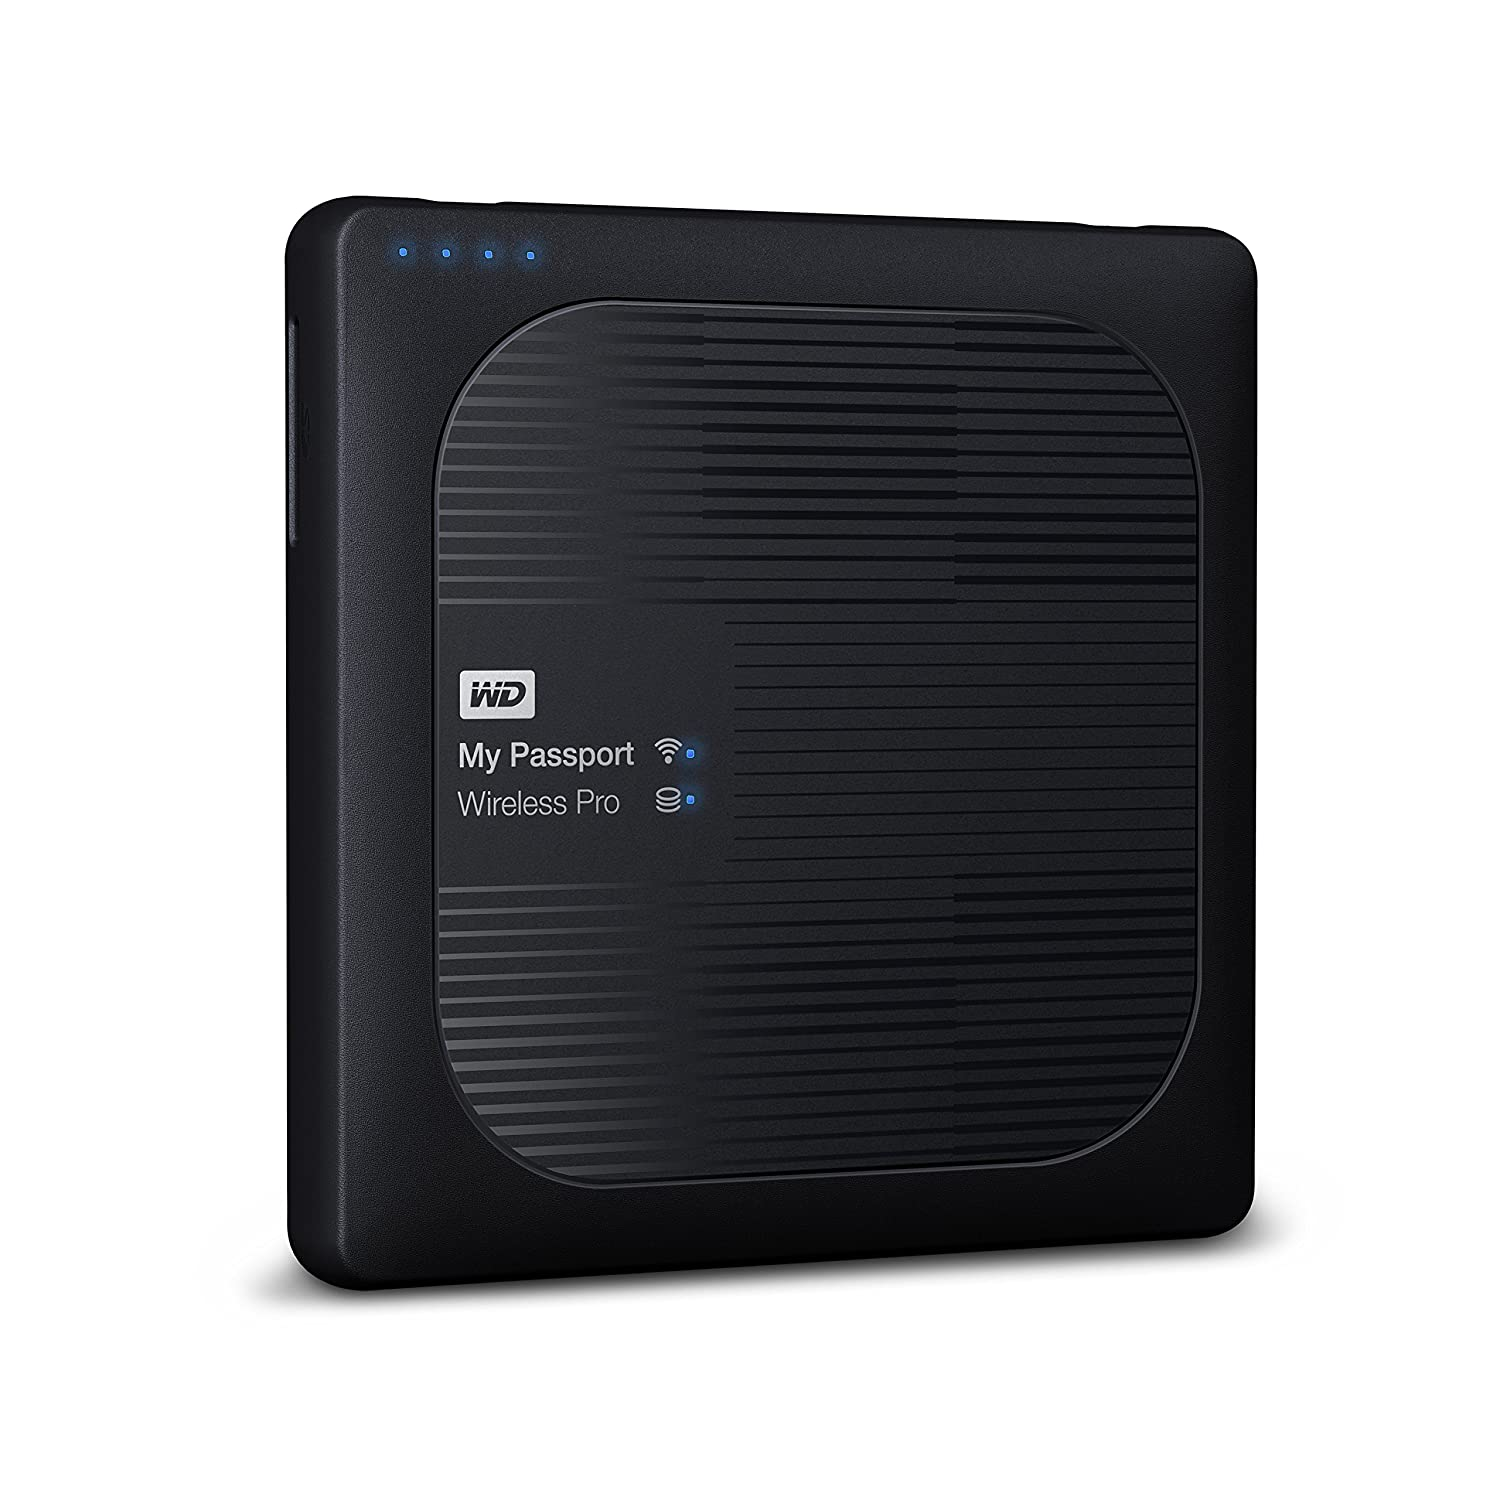 WD 4TB My Passport Portable External Hard Drive Black Friday Deal